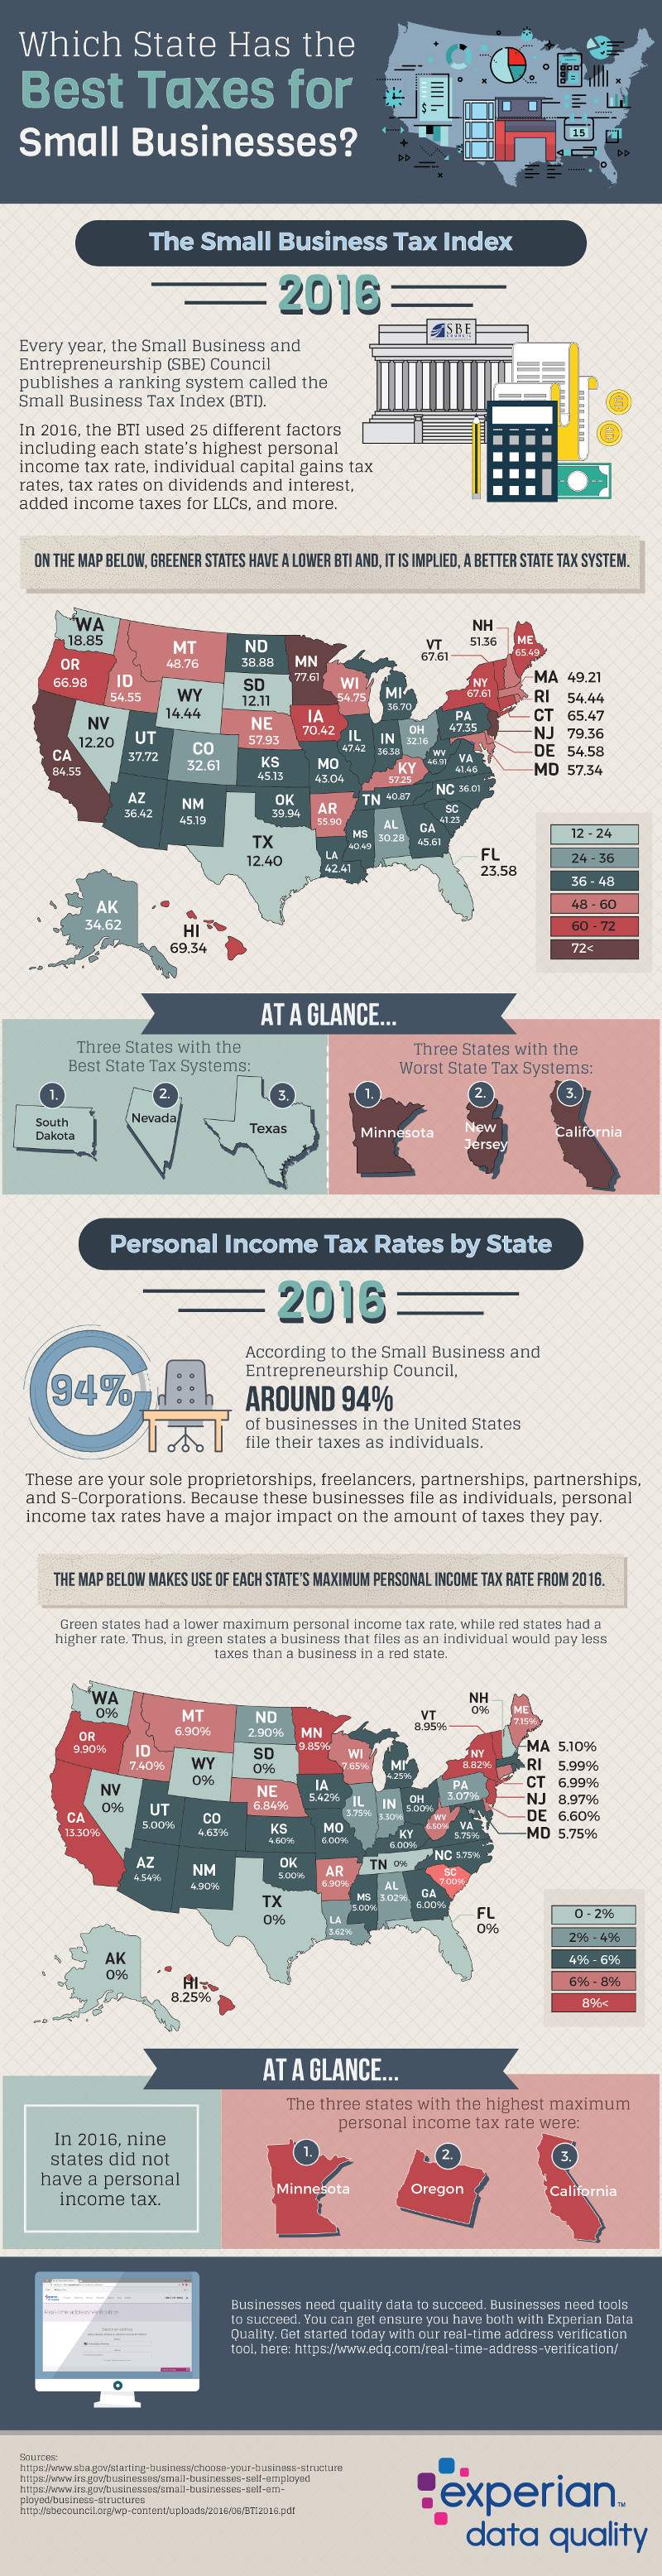 Best State For Paying Your Small Business Taxes - Infographic